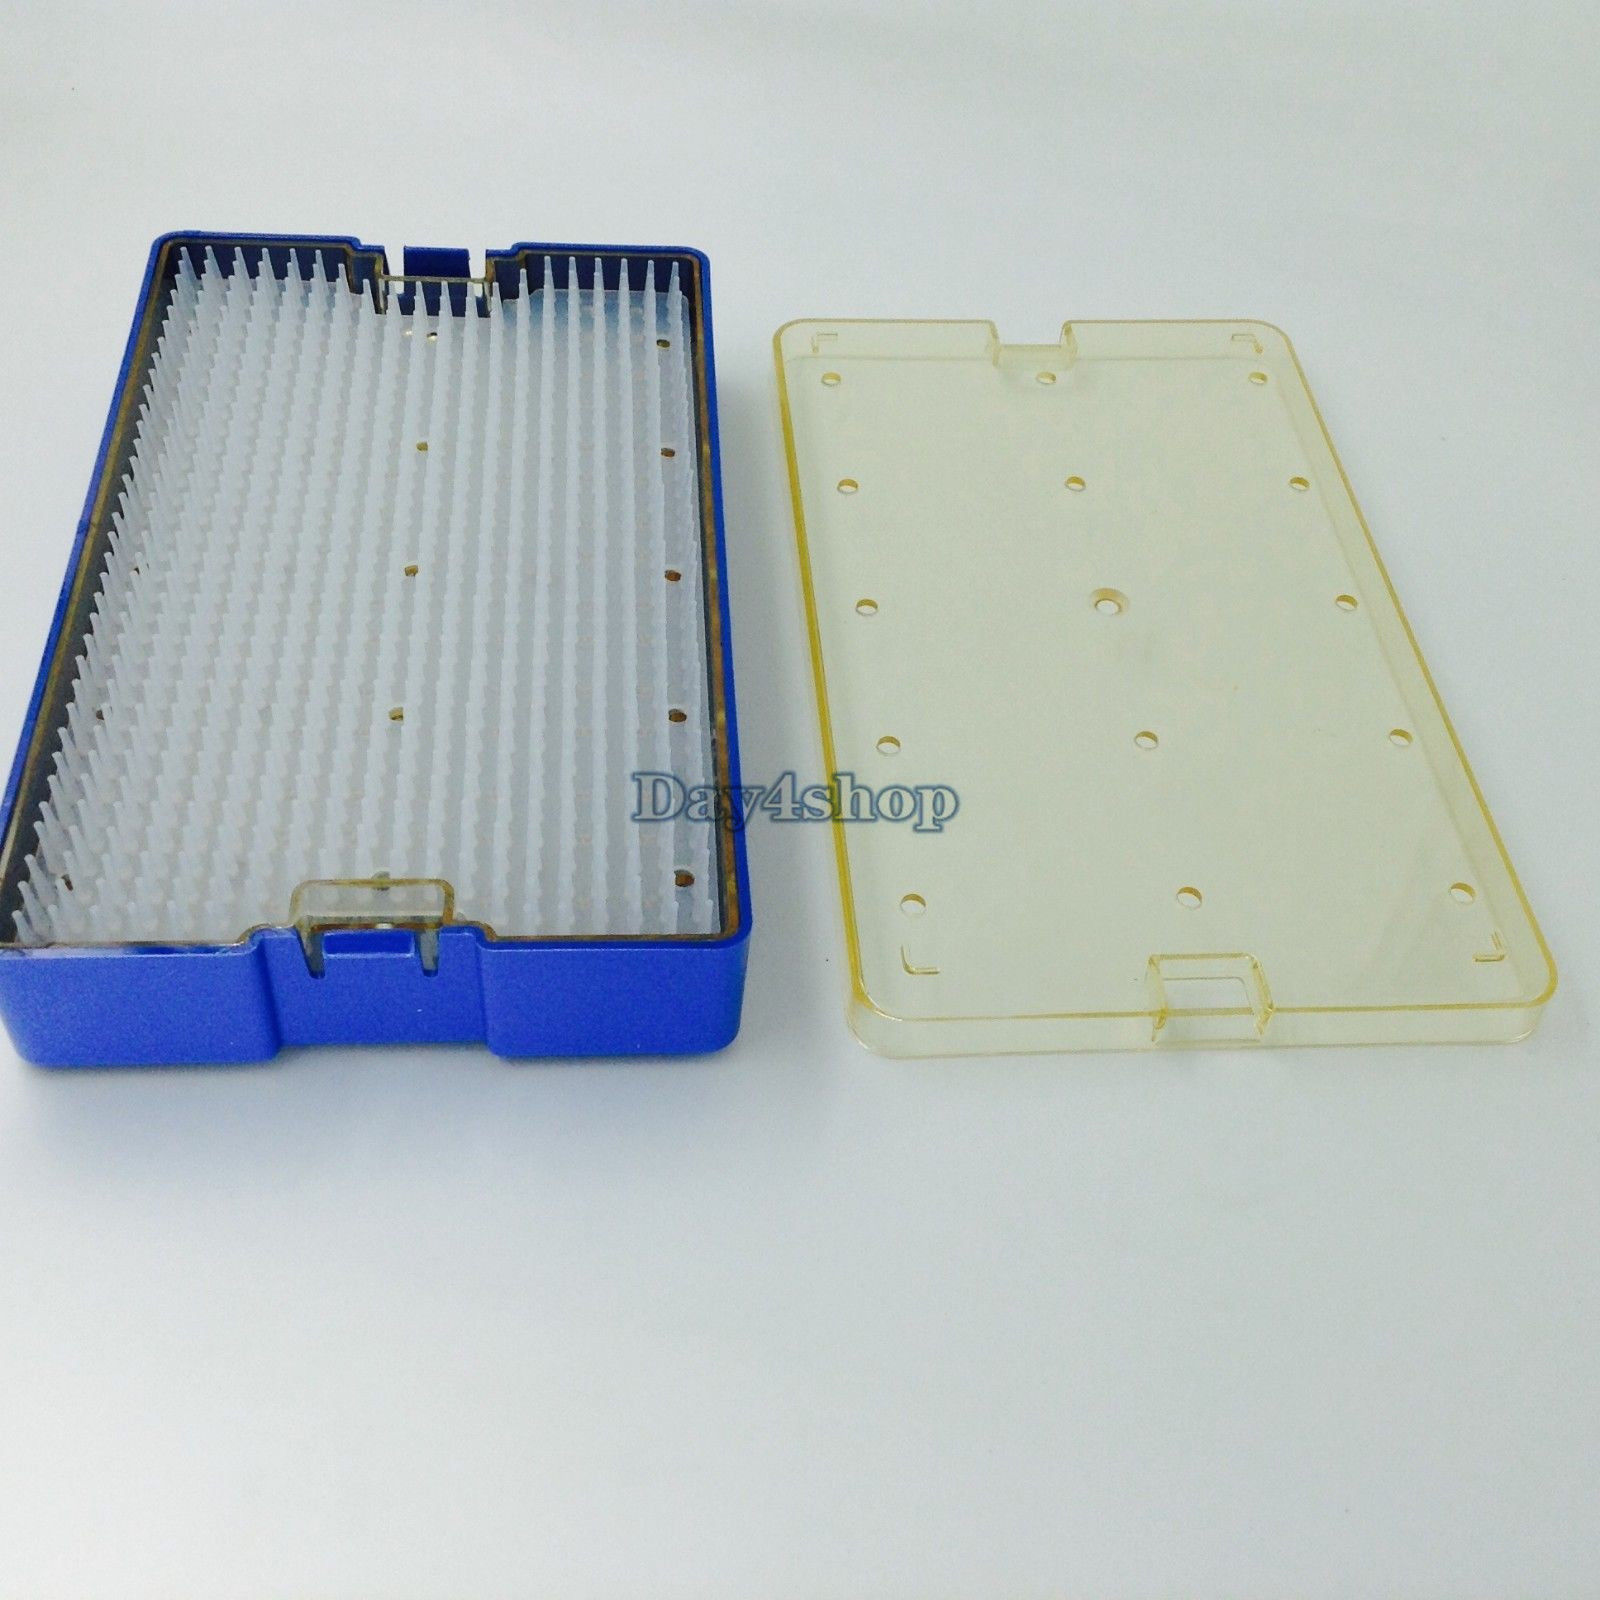 BEST big sterilization tray box cas double level ophthalmic eye surgical instrument